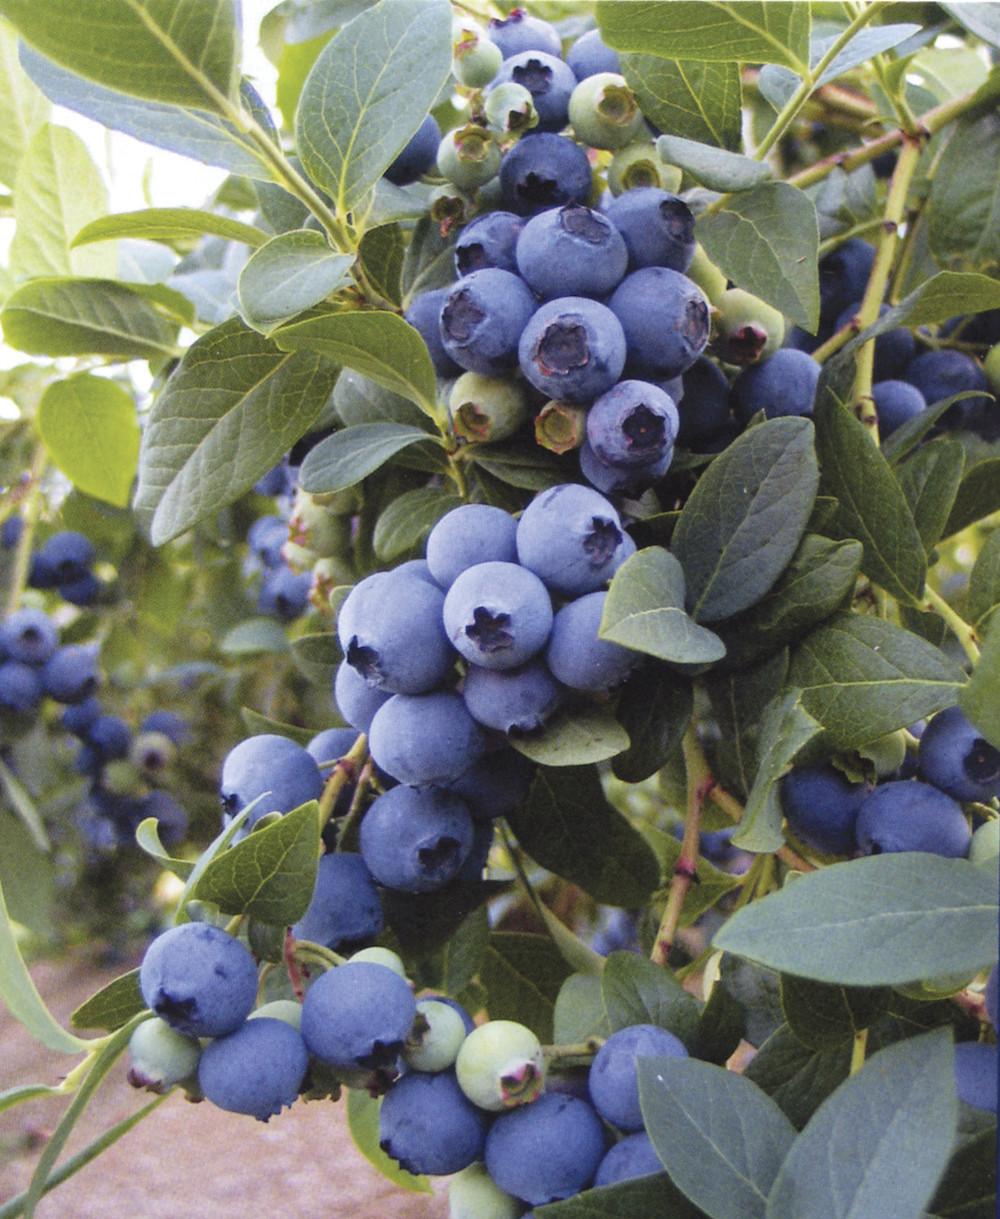 Pike Nurseries celebrates National Blueberry Month this July